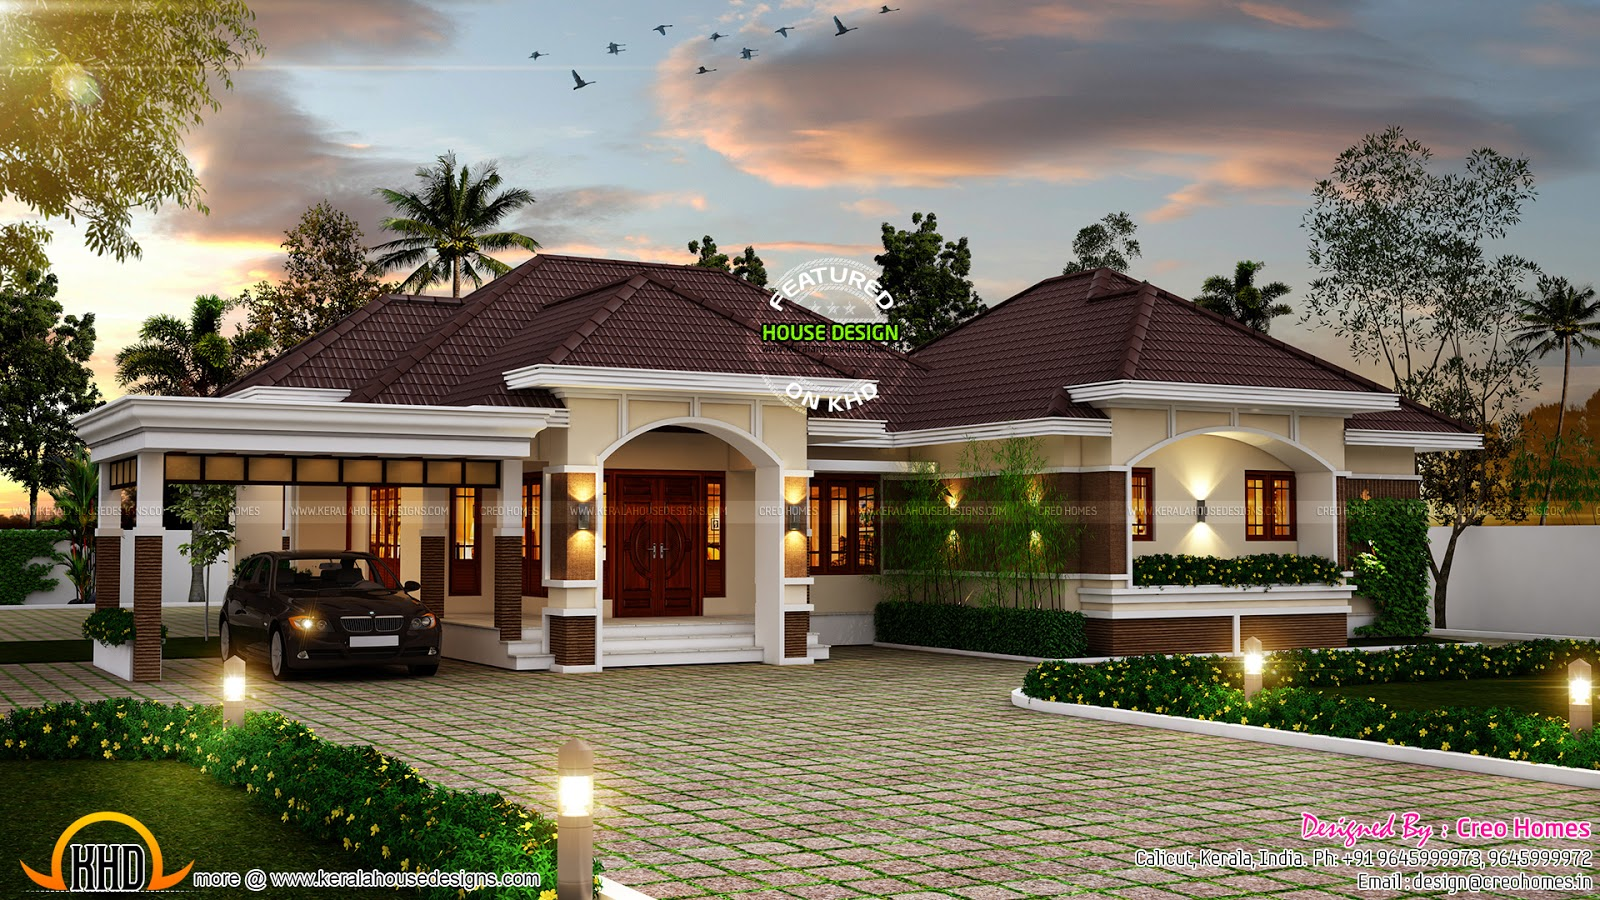 Outstanding bungalow in kerala kerala home design and for Indian bungalow designs and floor plans